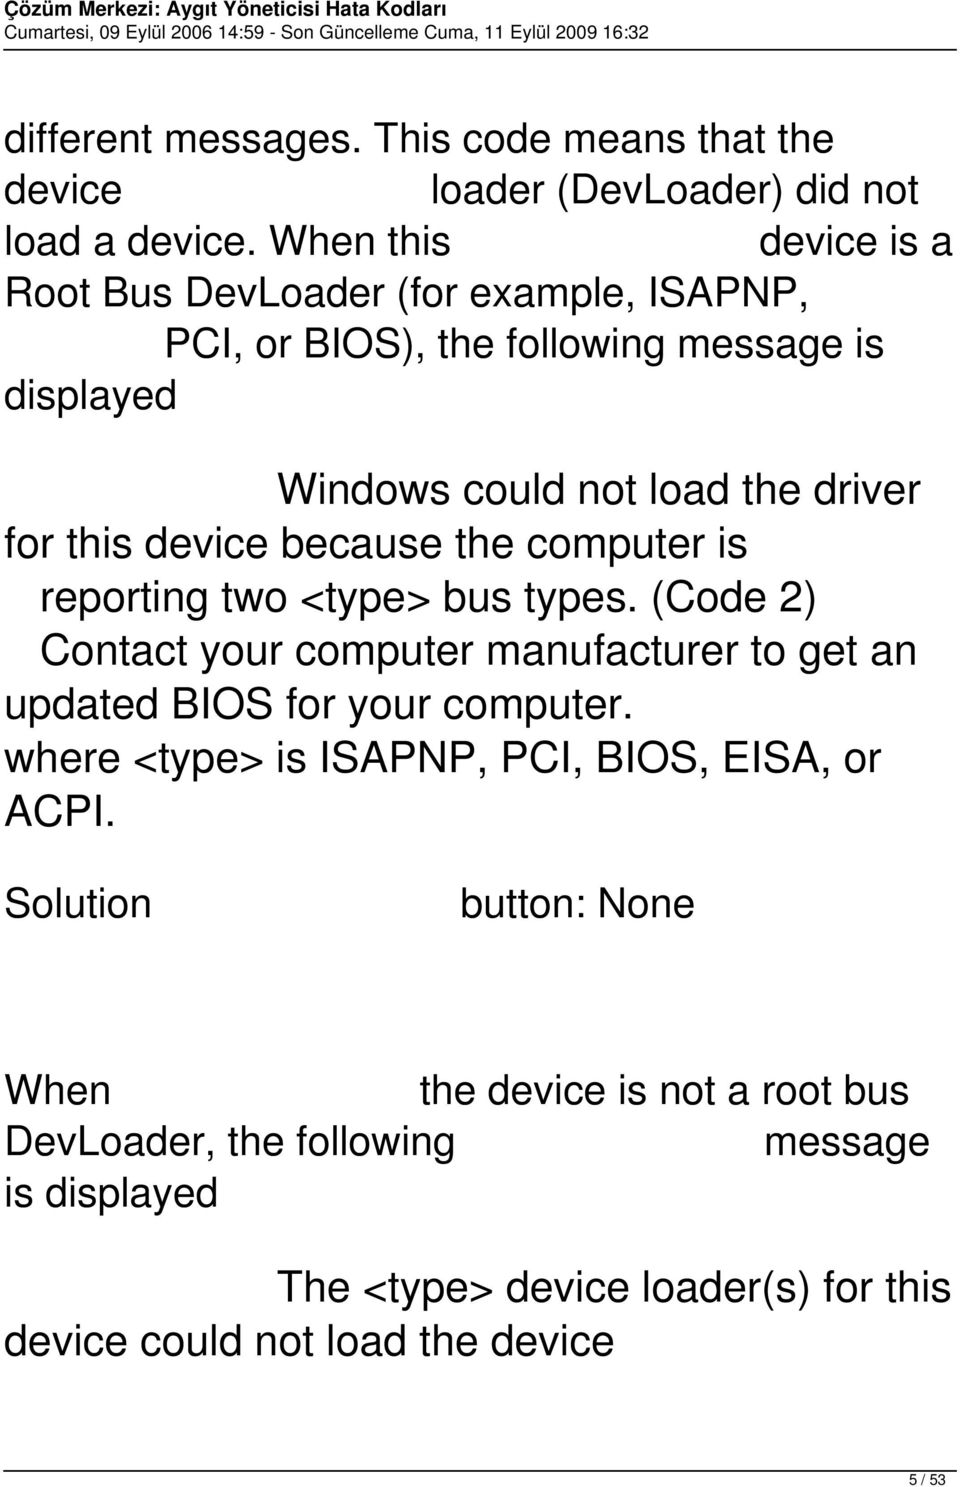 device because the computer is reporting two <type> bus types. (Code 2) Contact your computer manufacturer to get an updated BIOS for your computer.